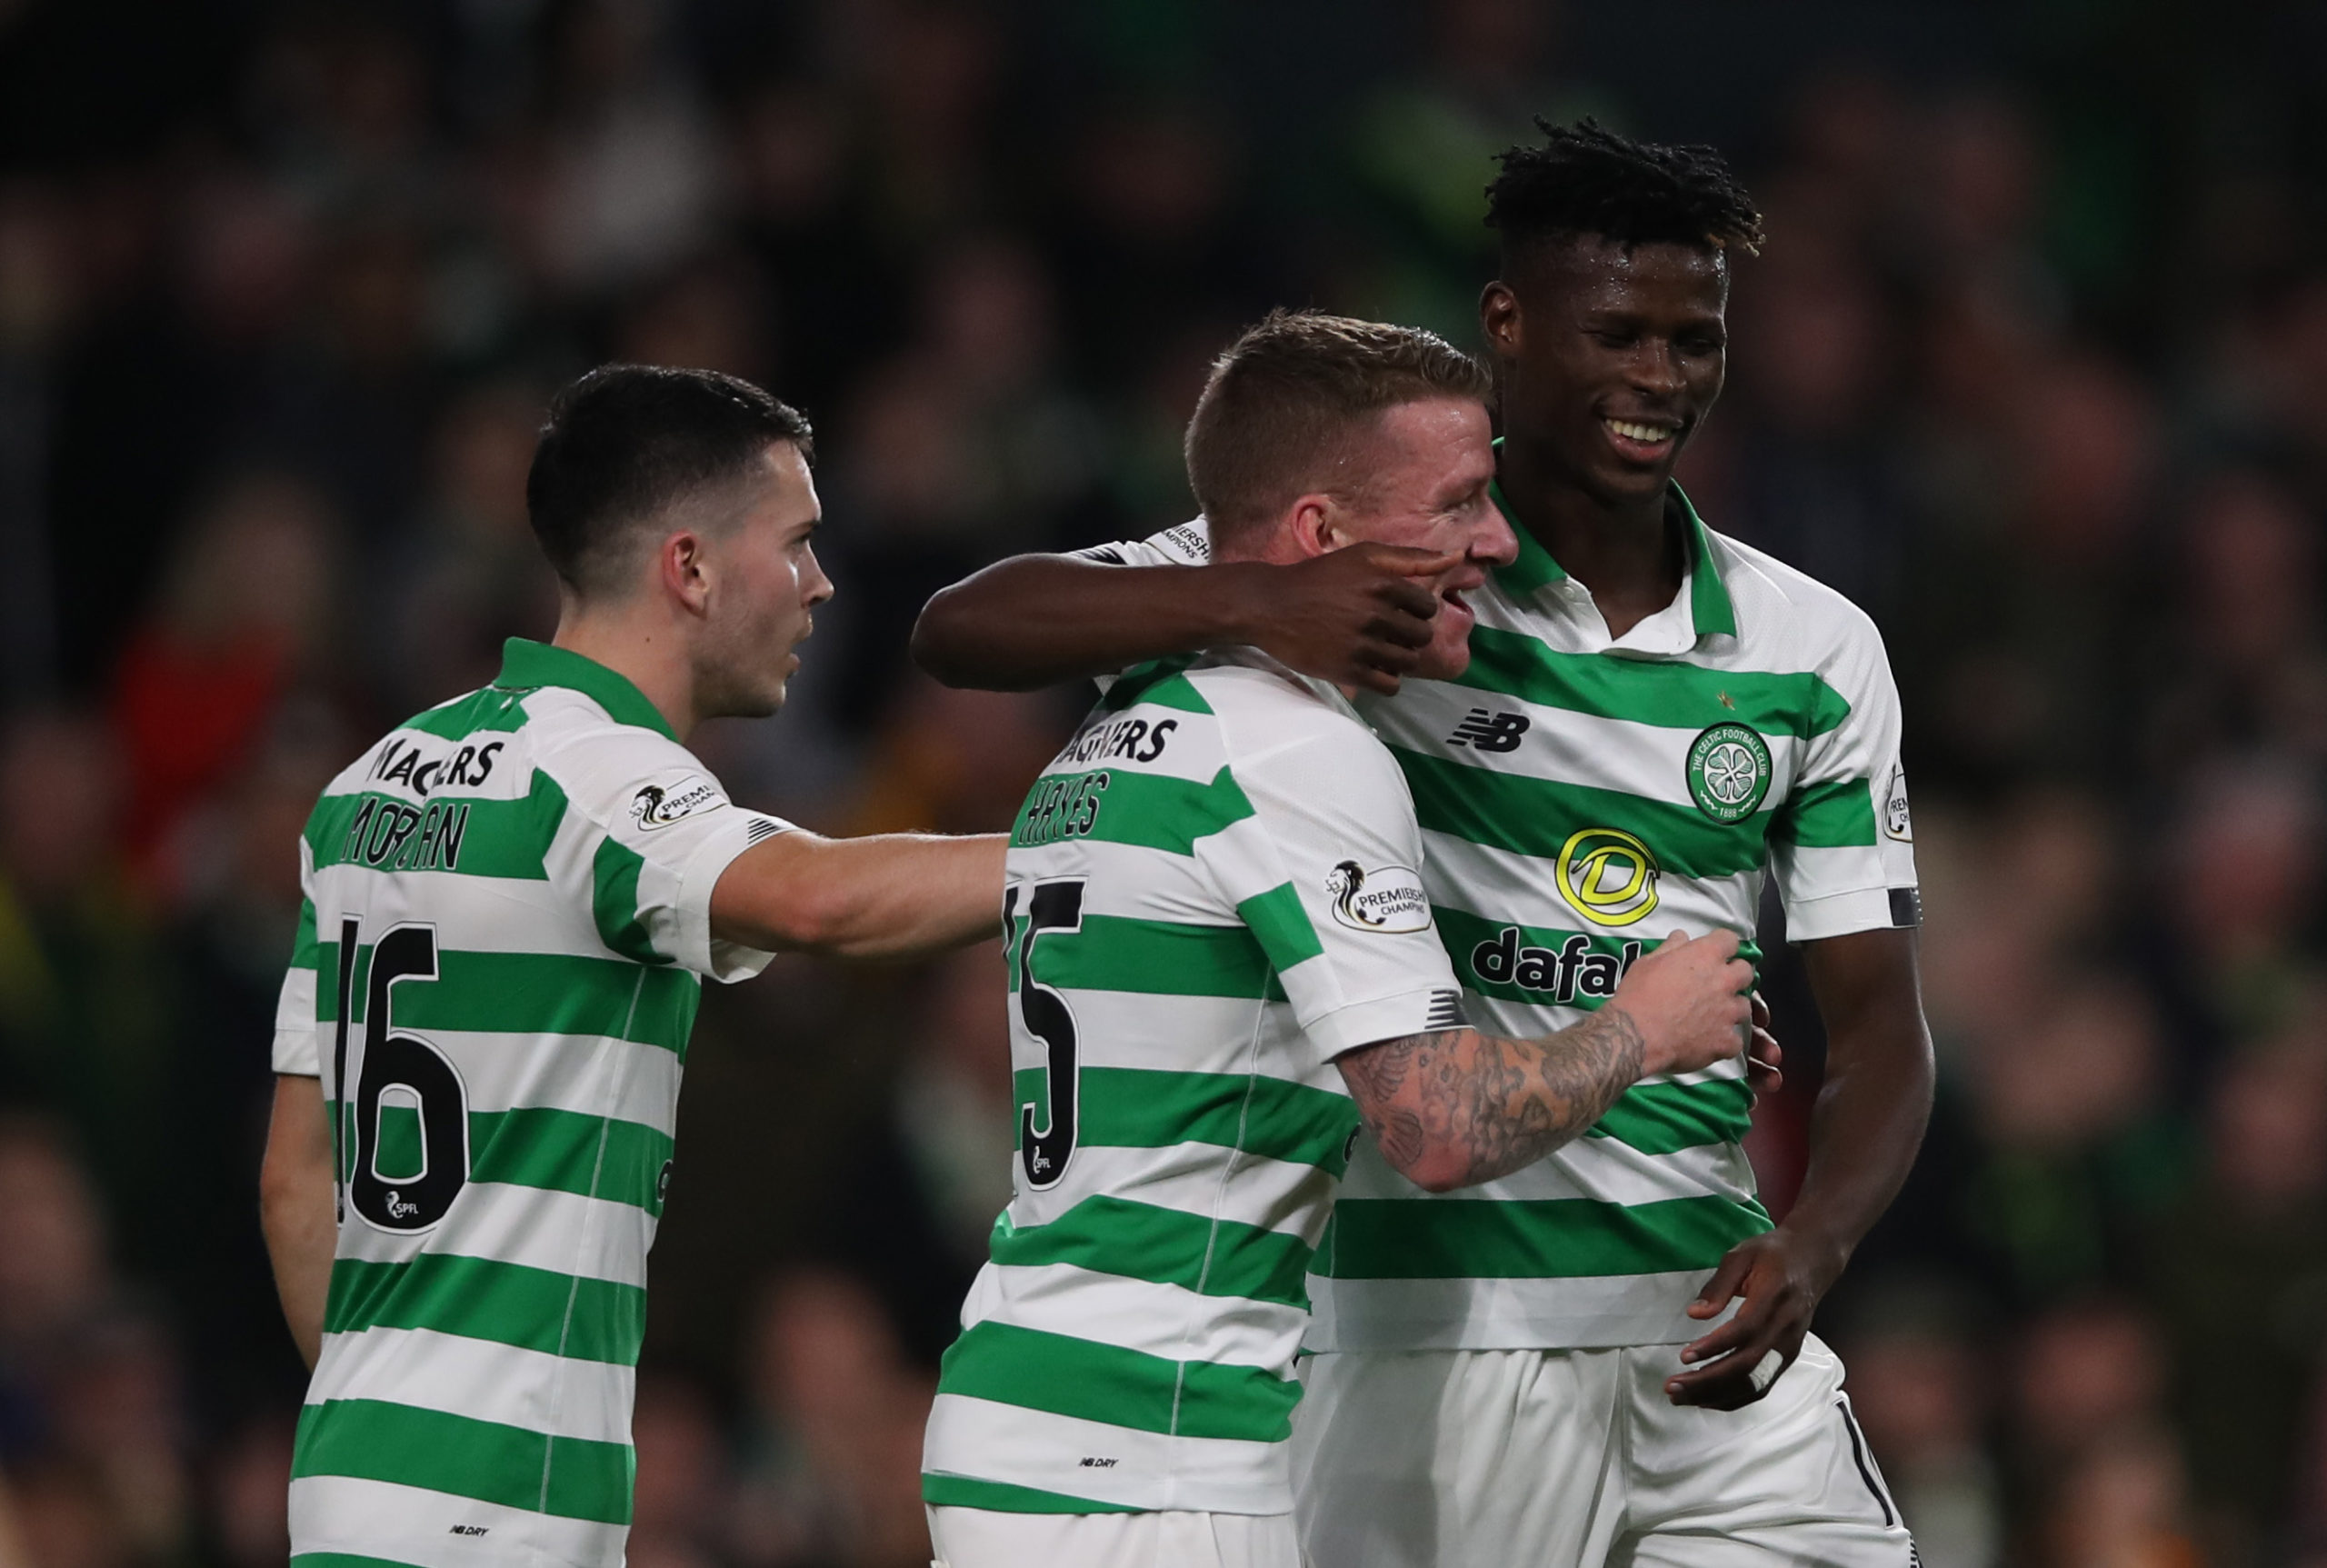 Celtic striker Vakoun Bayo celebrates a goal